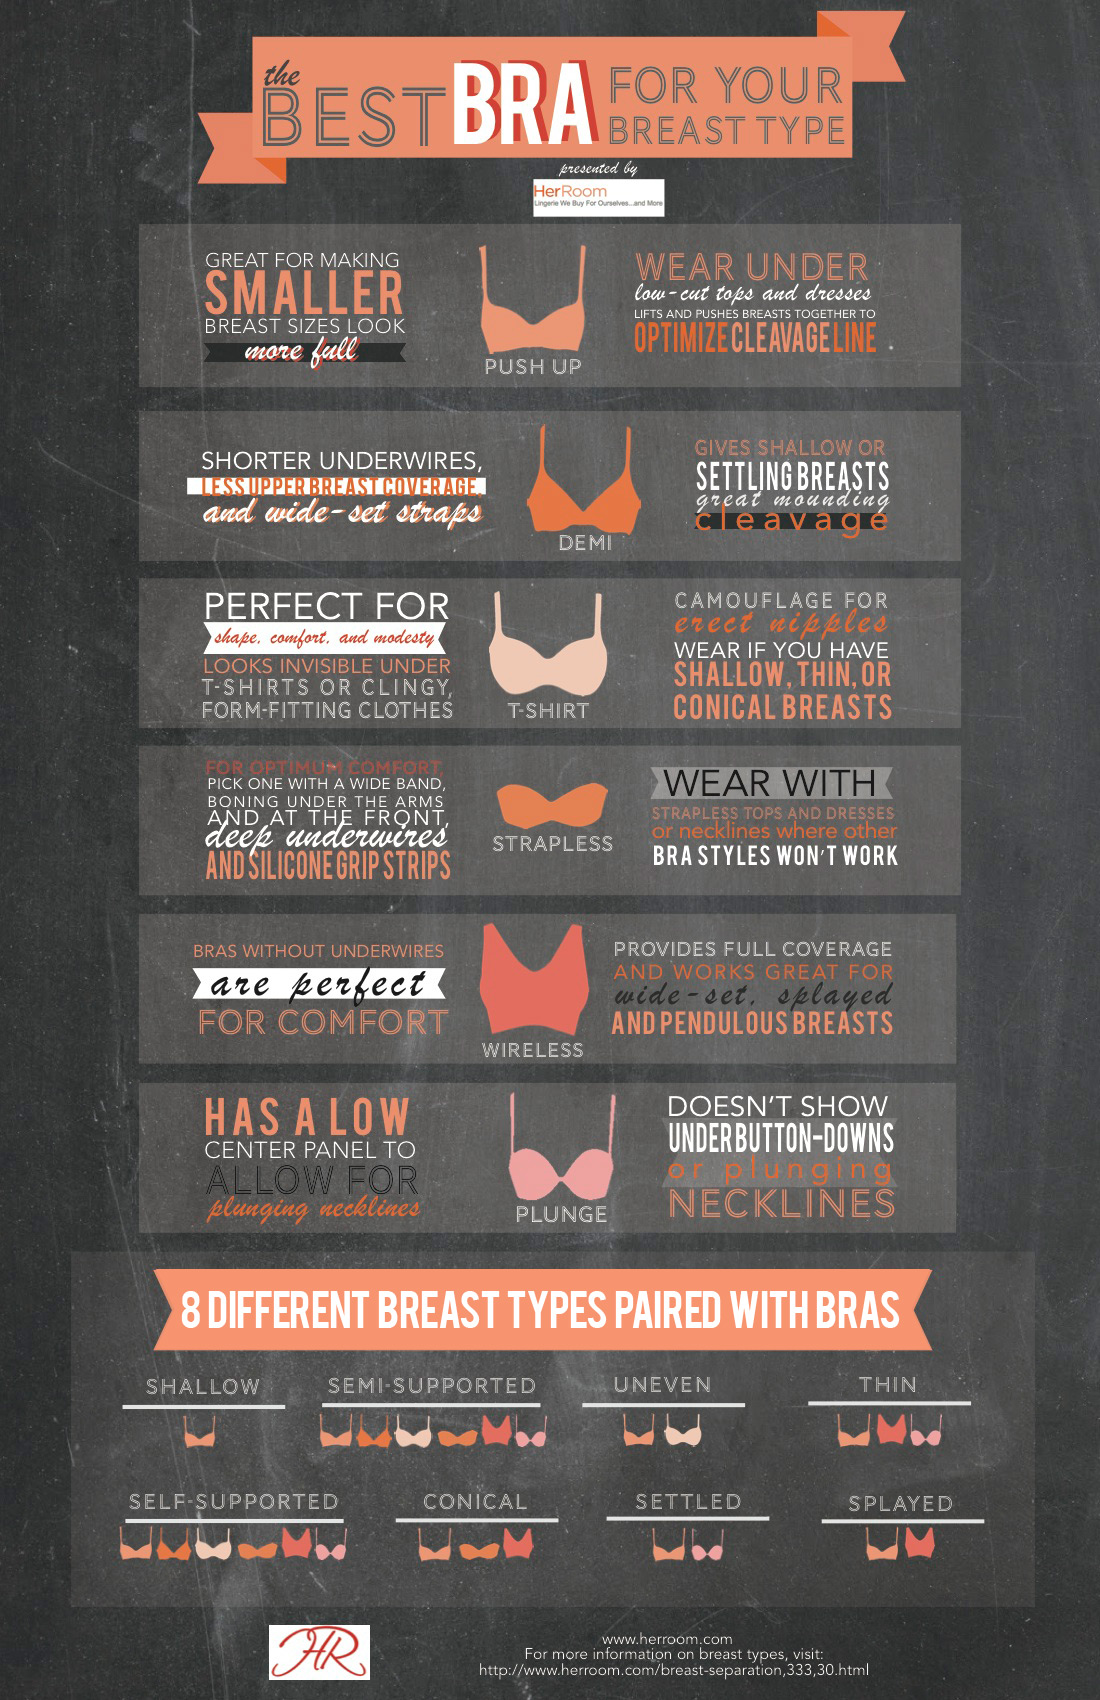 d154c1cef0 Luxetips Style! The Best Bra for Your Breast Type